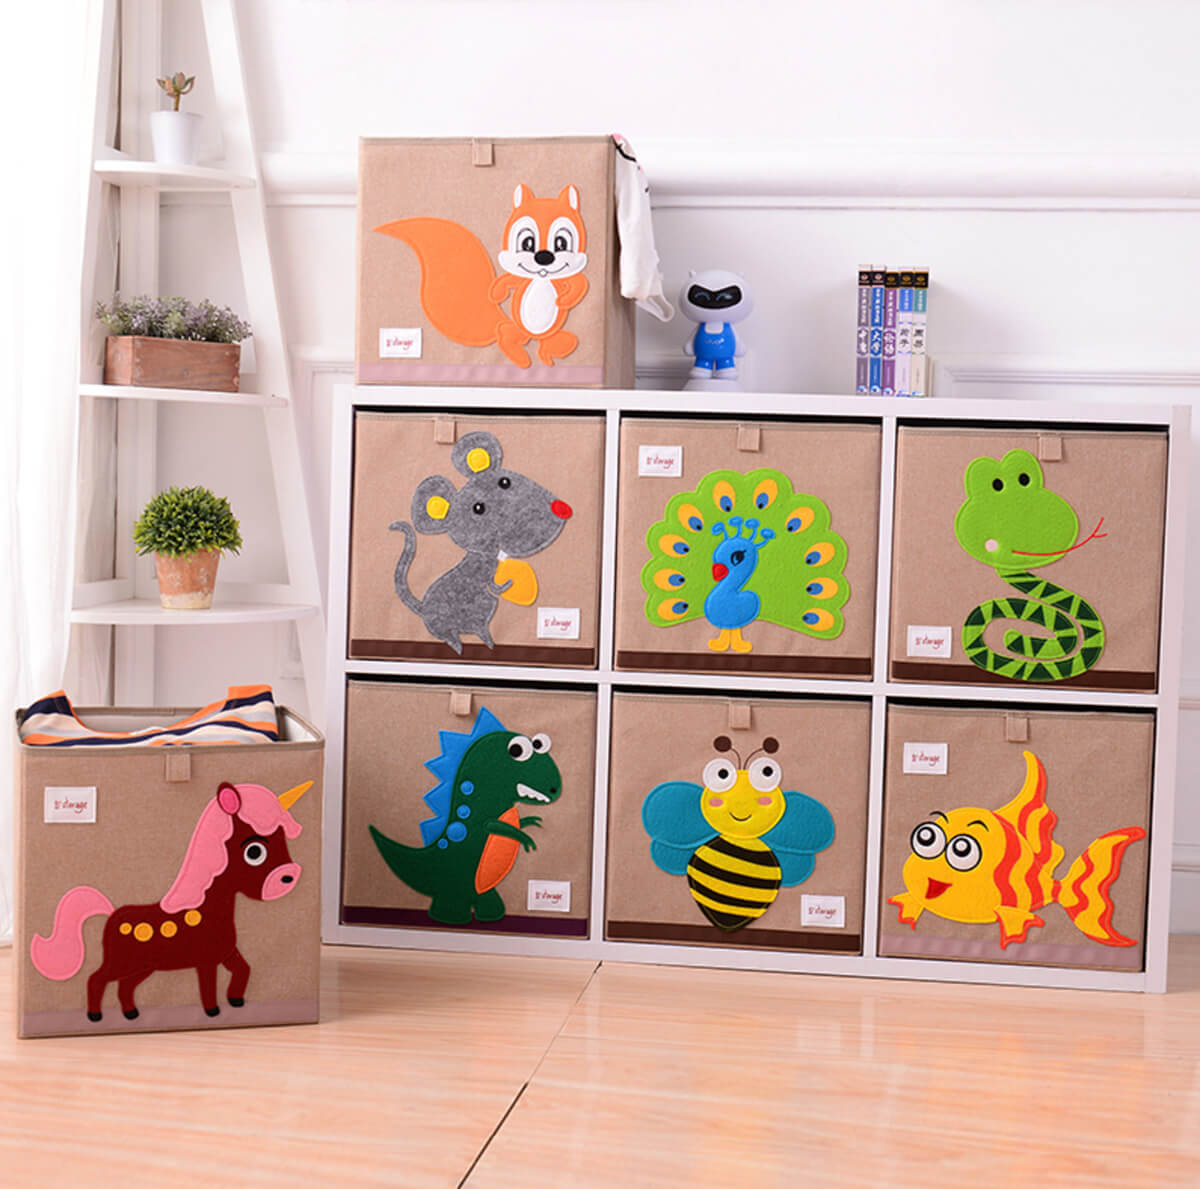 Playful Patterned Toy Storage Bins